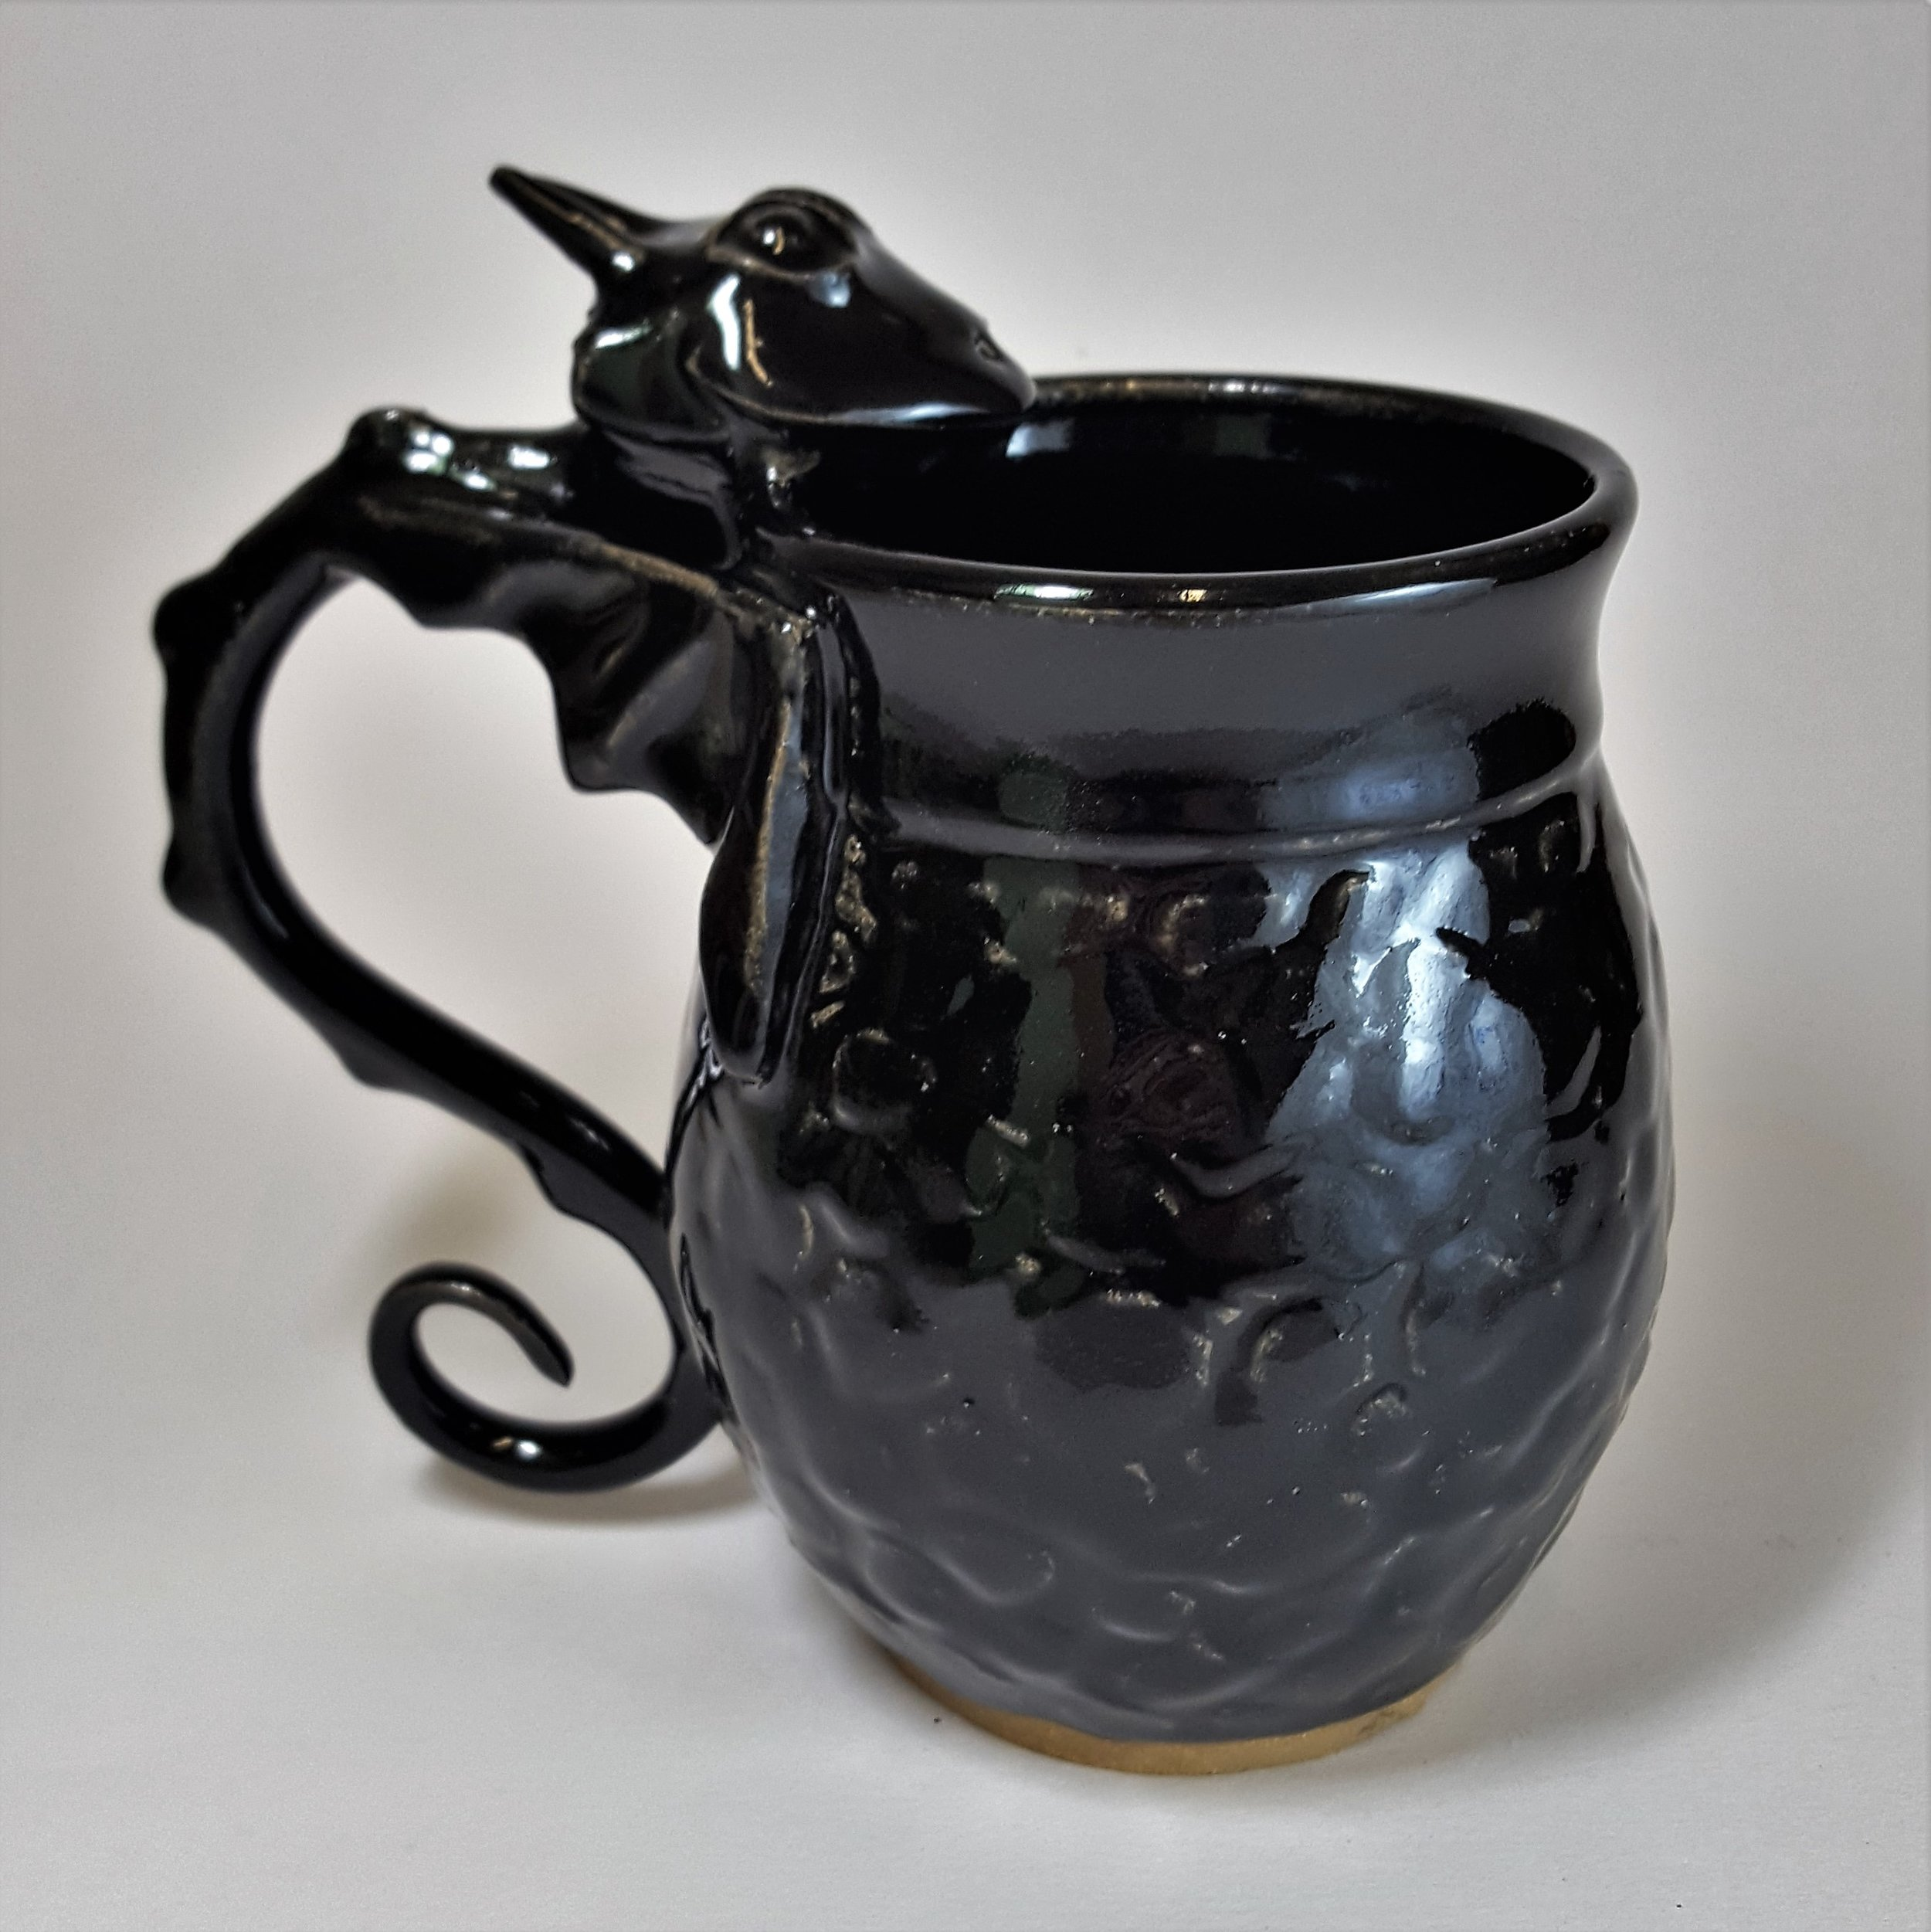 SPECIAL EDITION 19 oz. Black Dragon Mug with Scale Detail - $80